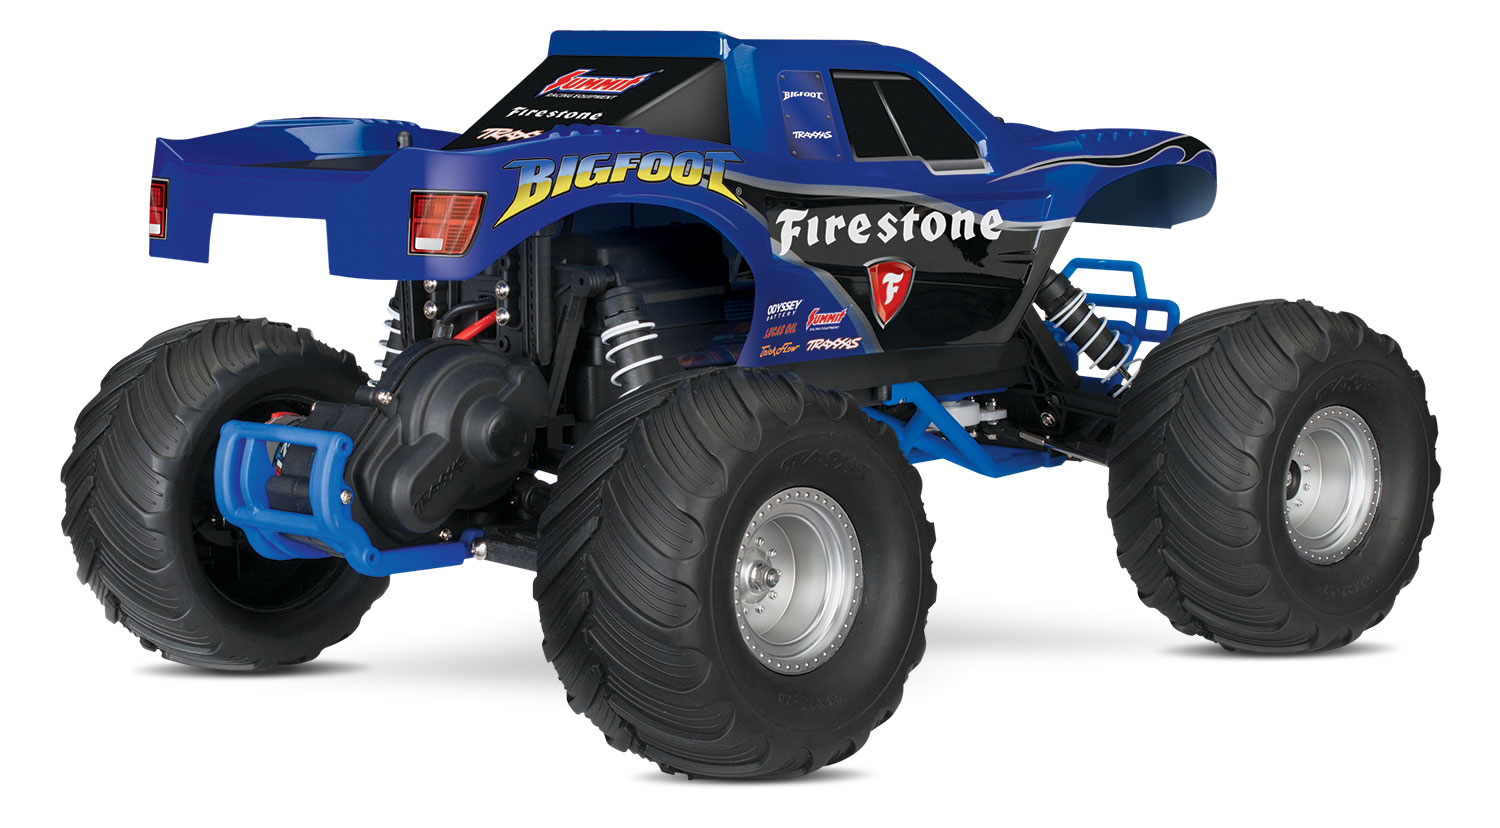 traxxas-bigfoot-36084-1-fstn-2.jpg